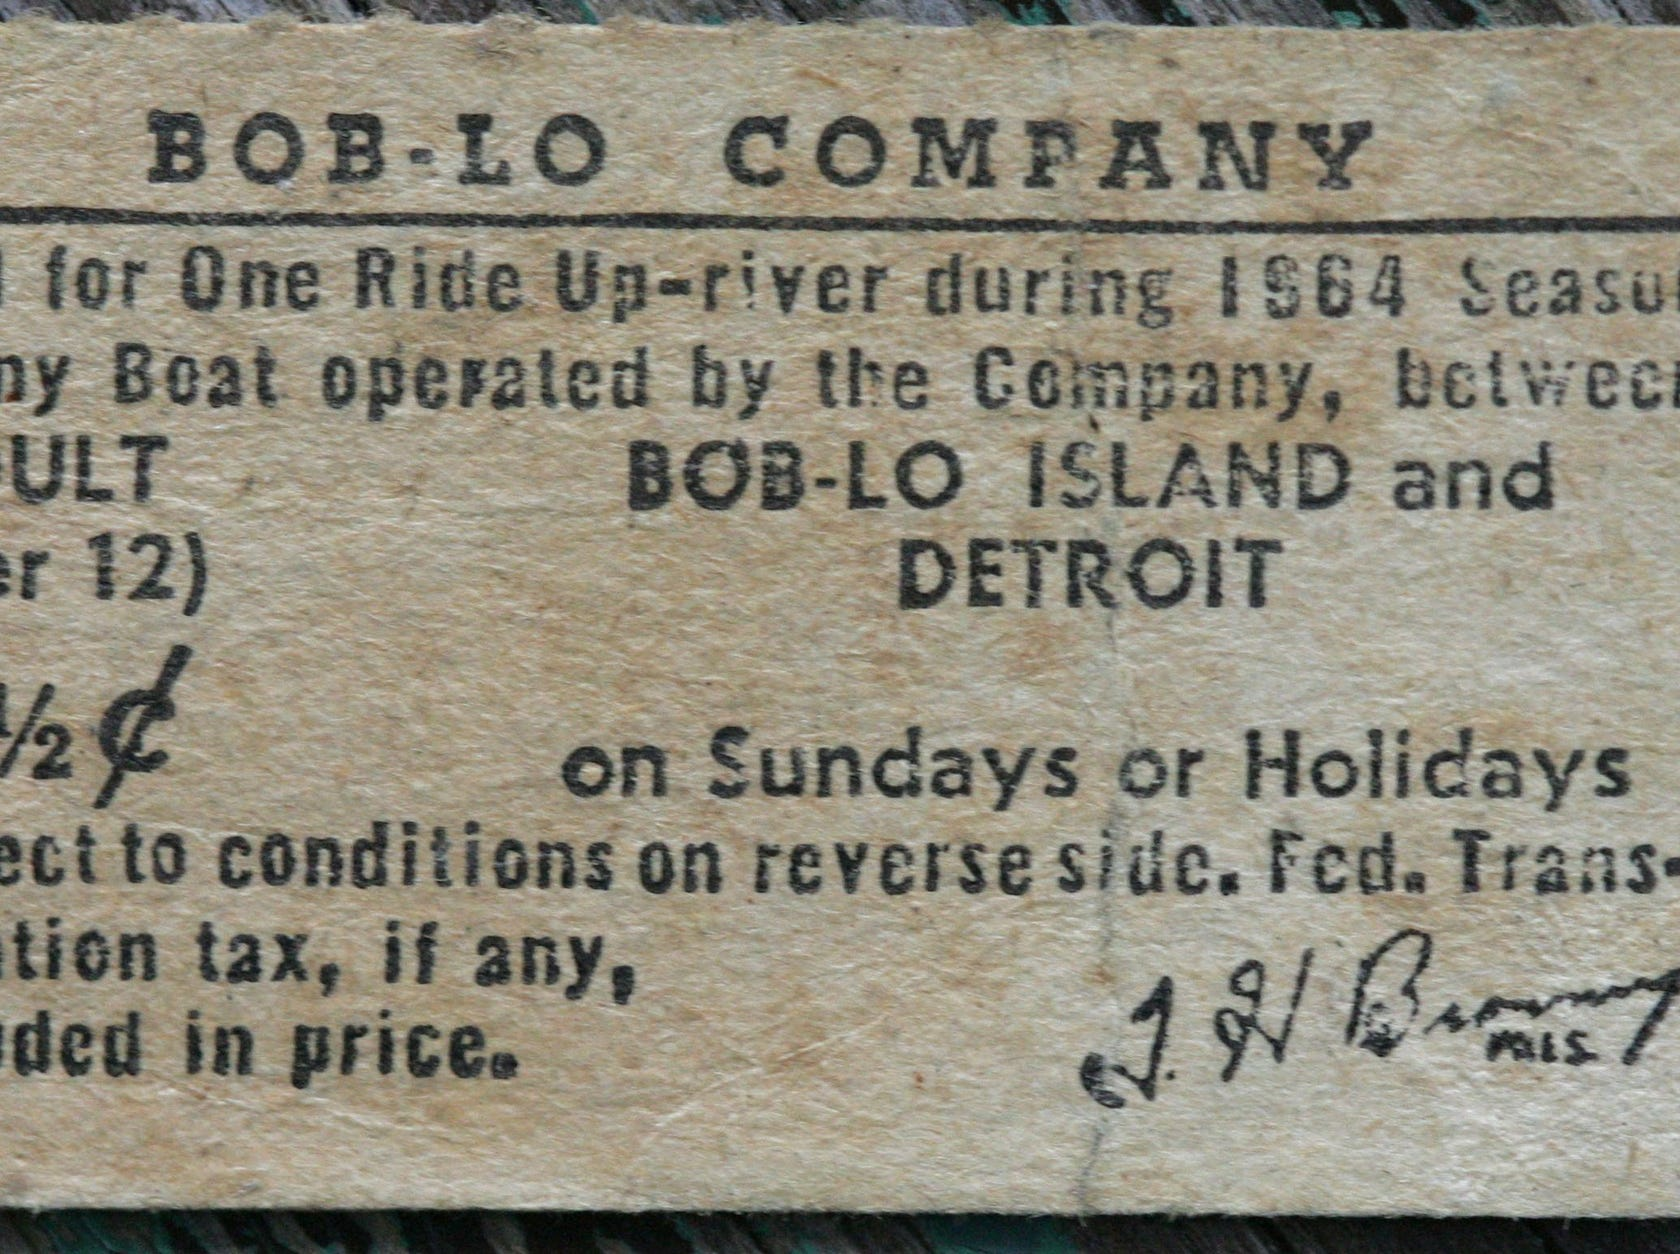 An 87 1/2 cent ticket for a one-way ride up the Detroit River between Bob-Lo Island and Detroit during the 1964 season.